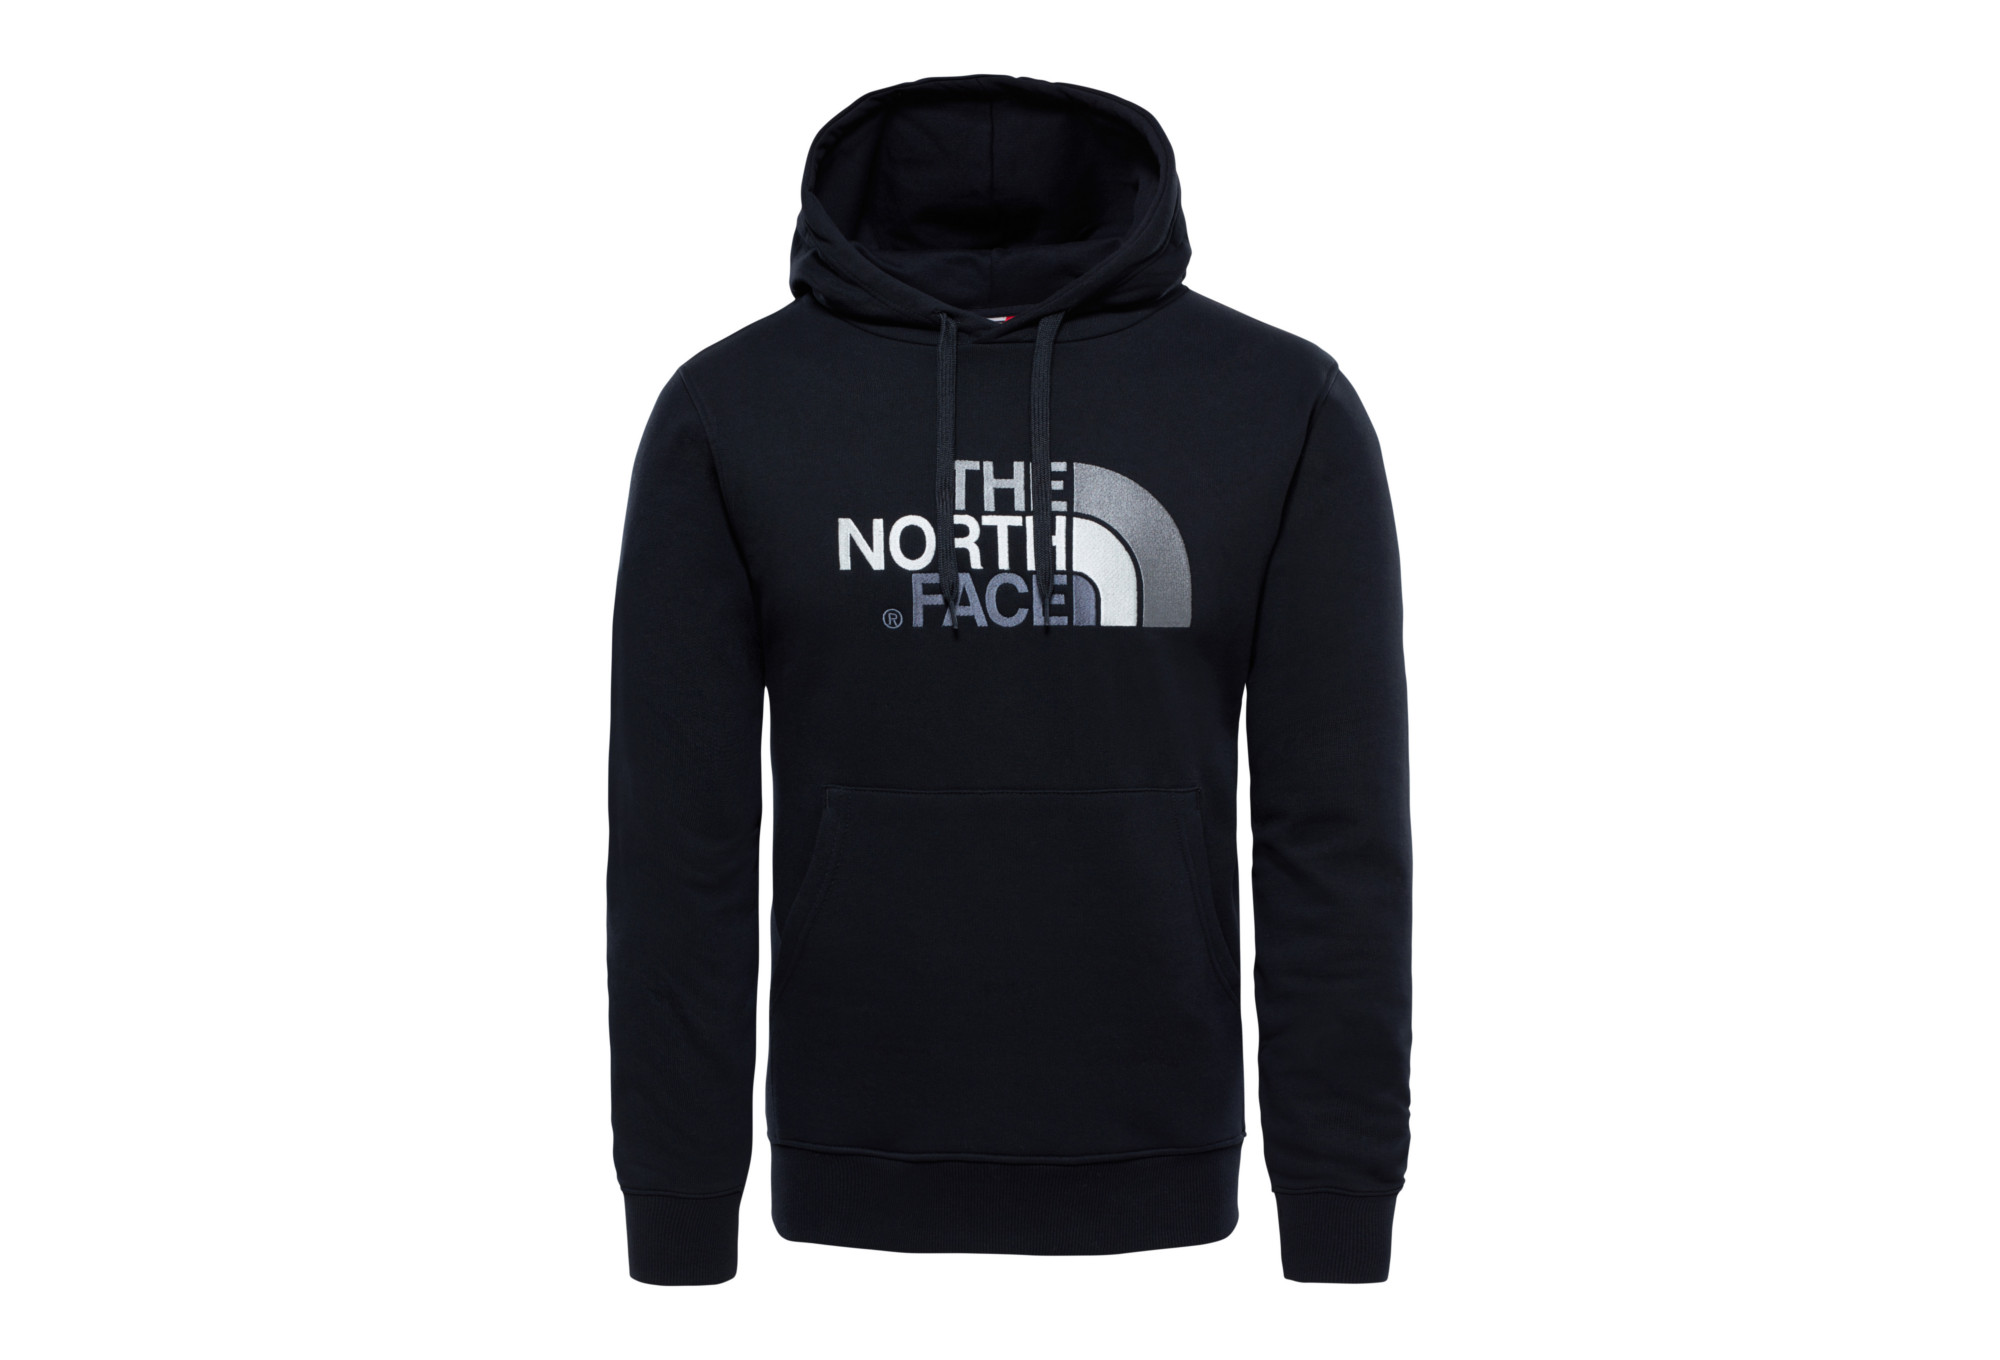 a521138d03 Felpa con cappuccio The North Face Drew Peak Nera